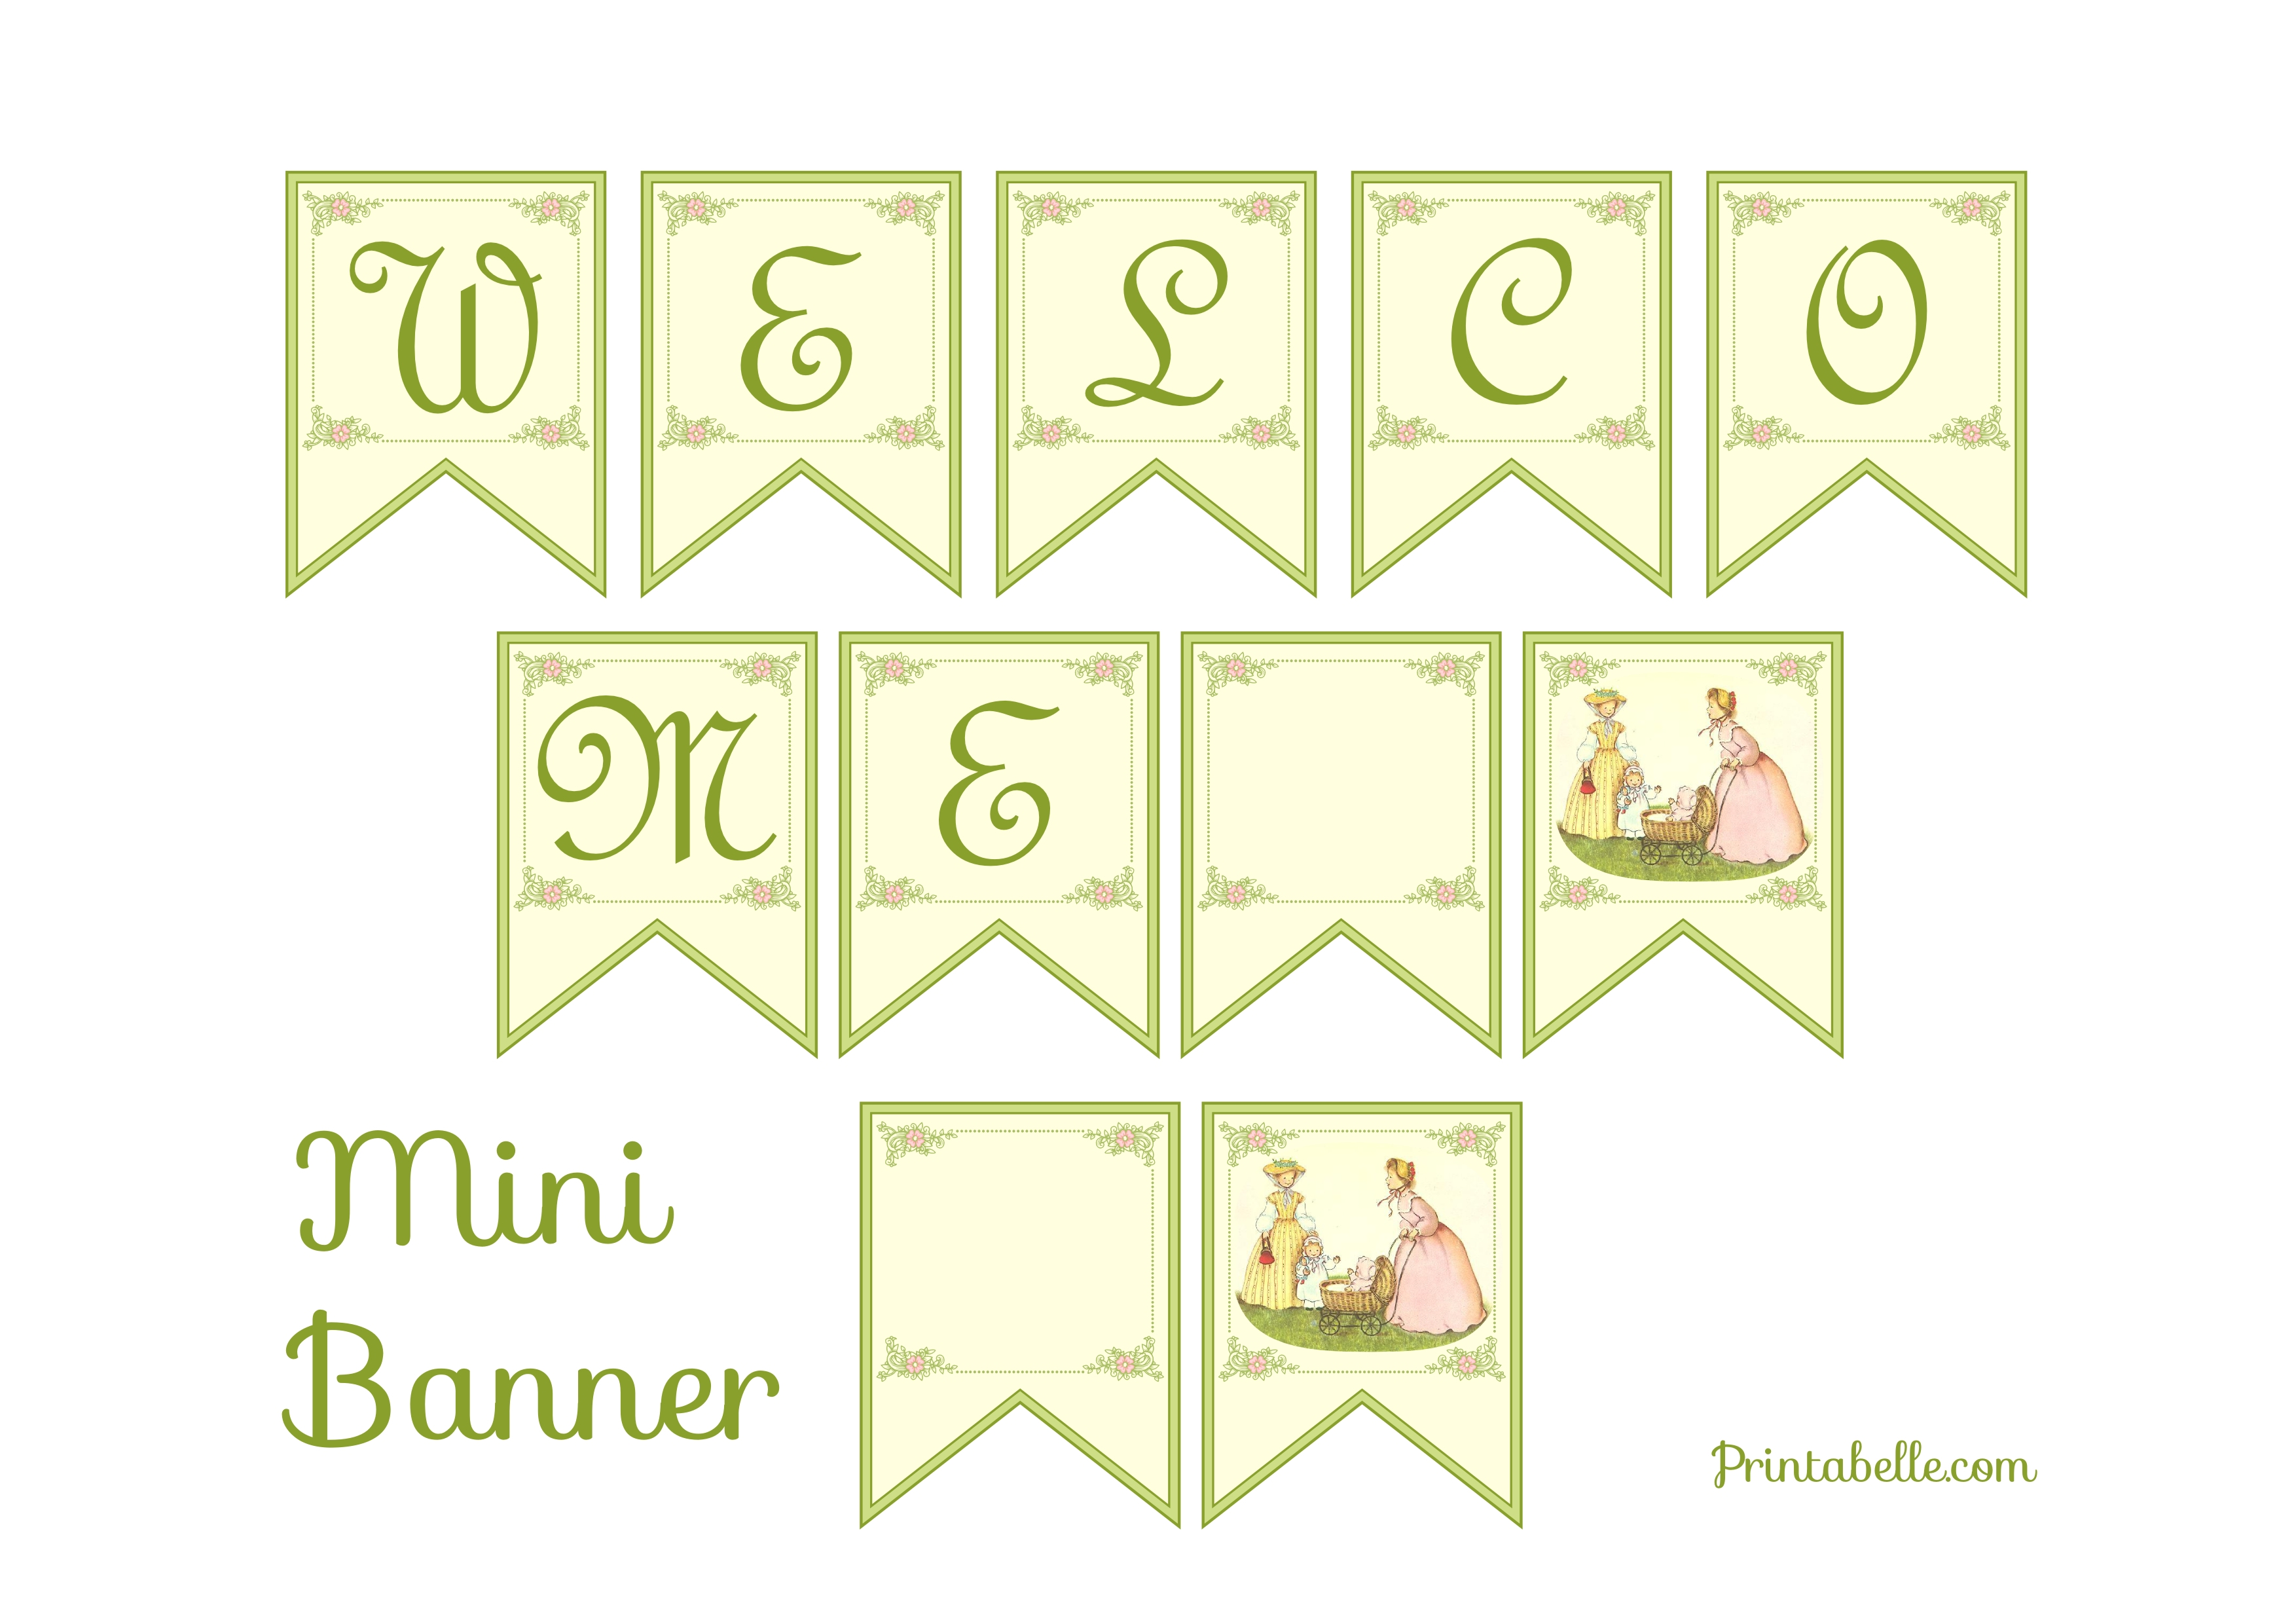 It is an image of Handy Free Printable Baby Shower Banner